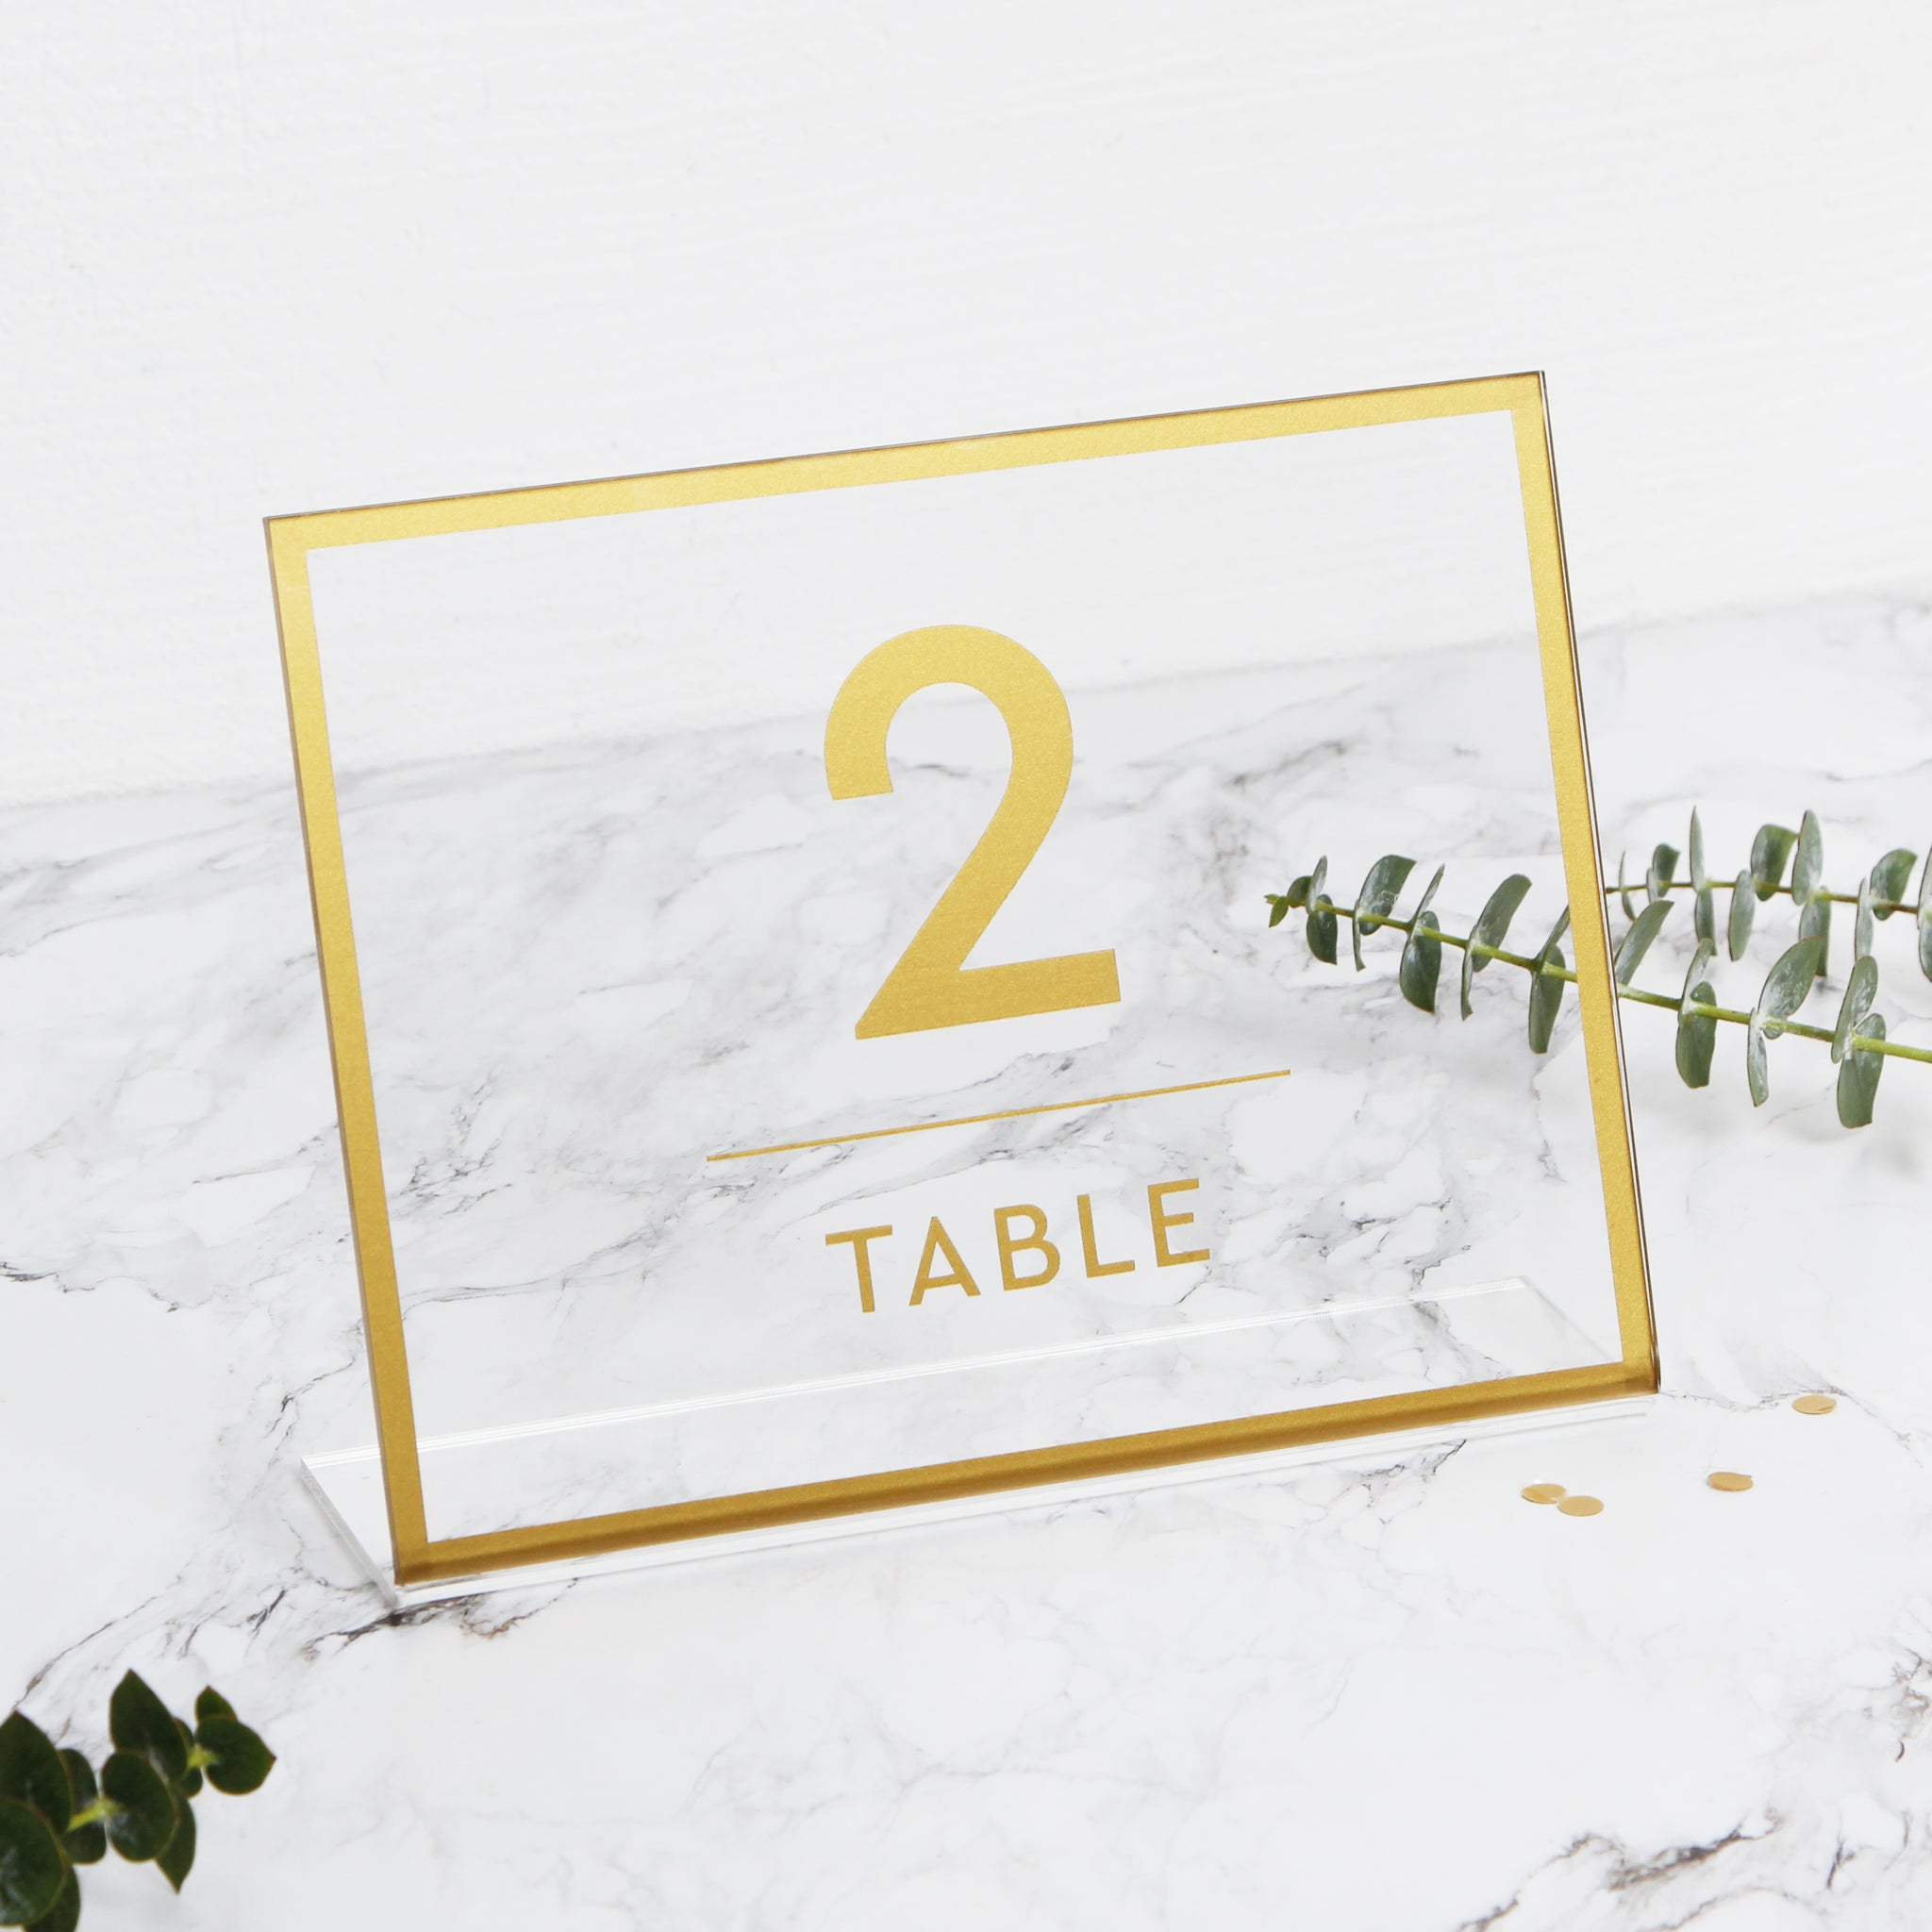 Acrylic Wedding Glass Sign For Table Numbers - Transperant Photo Book Gold Foil Sign - by Liumy - Liumy